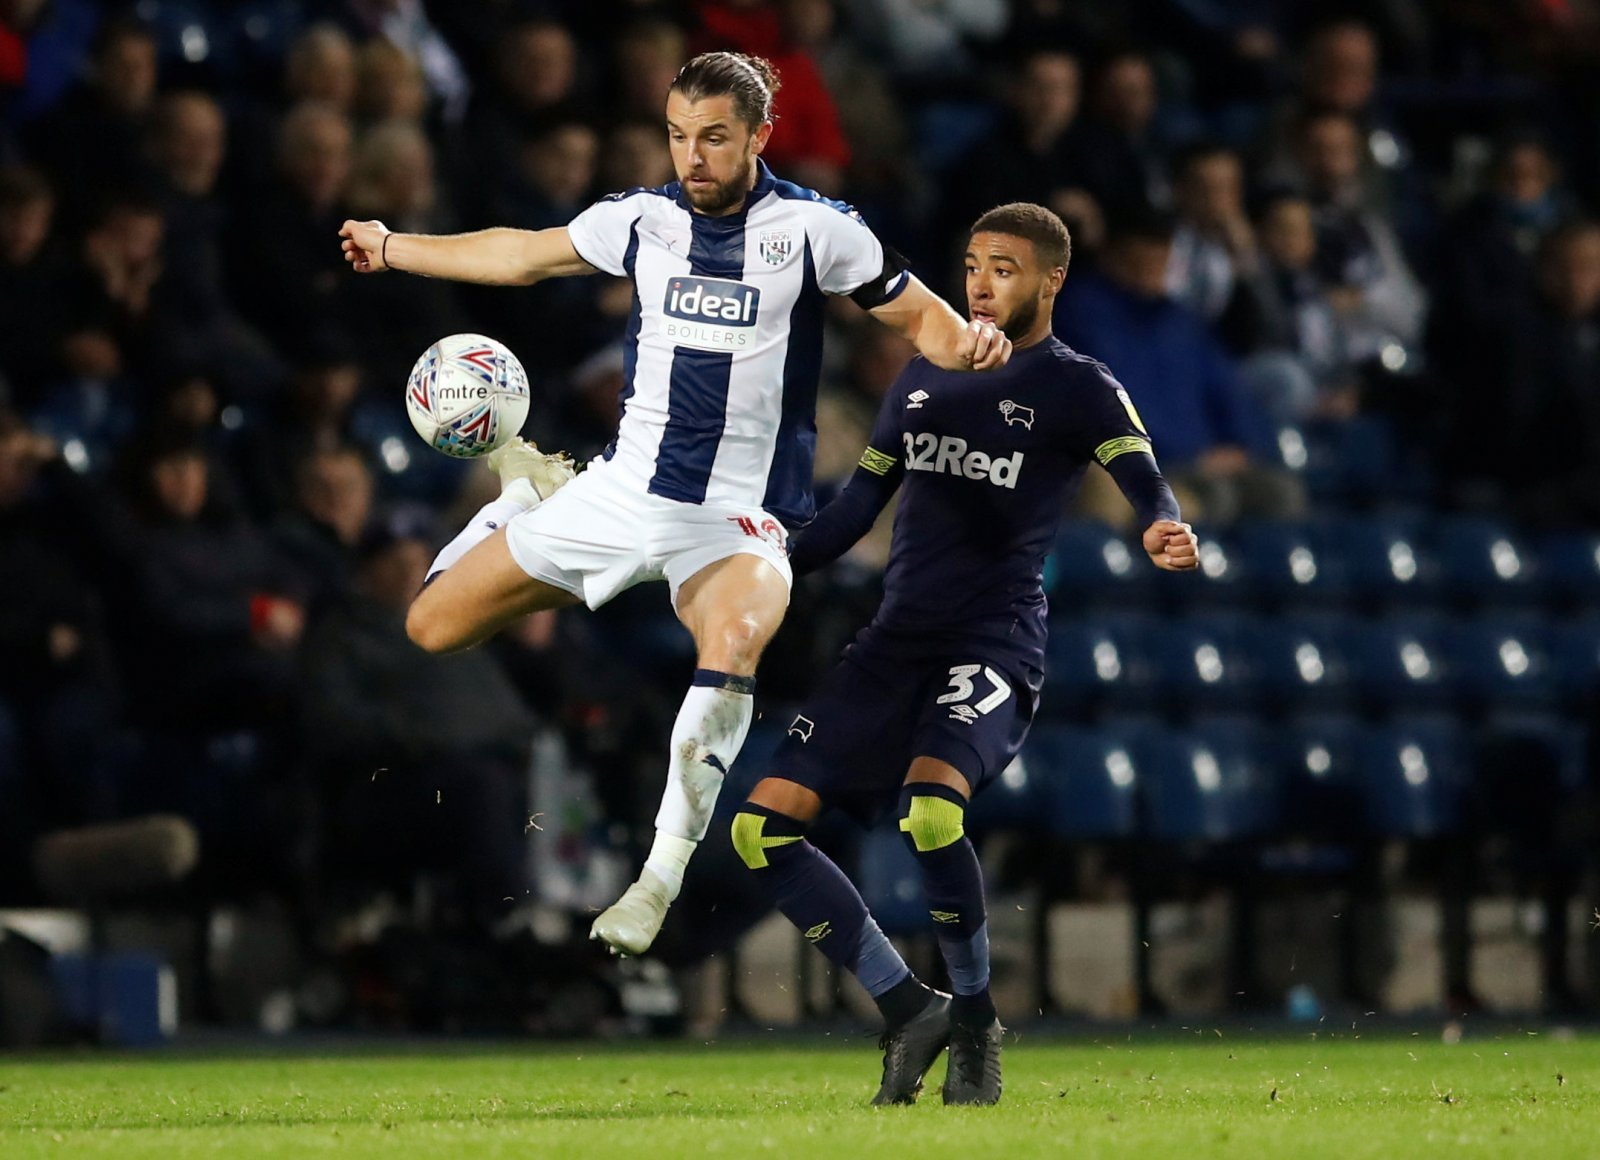 West Brom must keep hold of Rodriguez to maintain promotion hopes